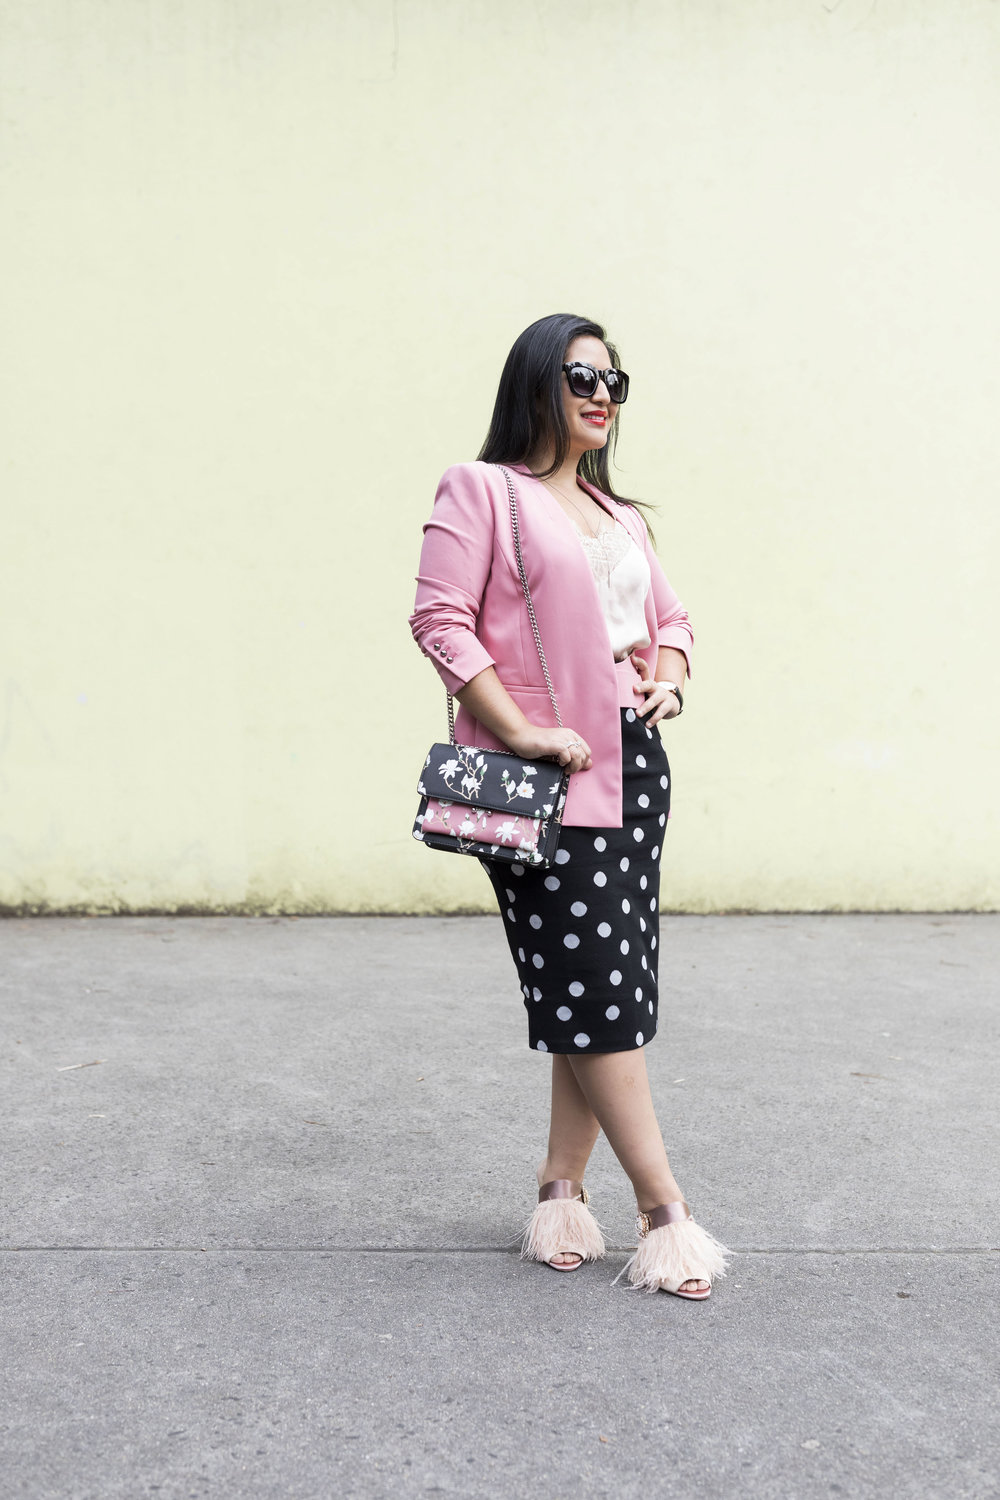 Krity S x Polka Dot and Pink Work Outfit2.jpg